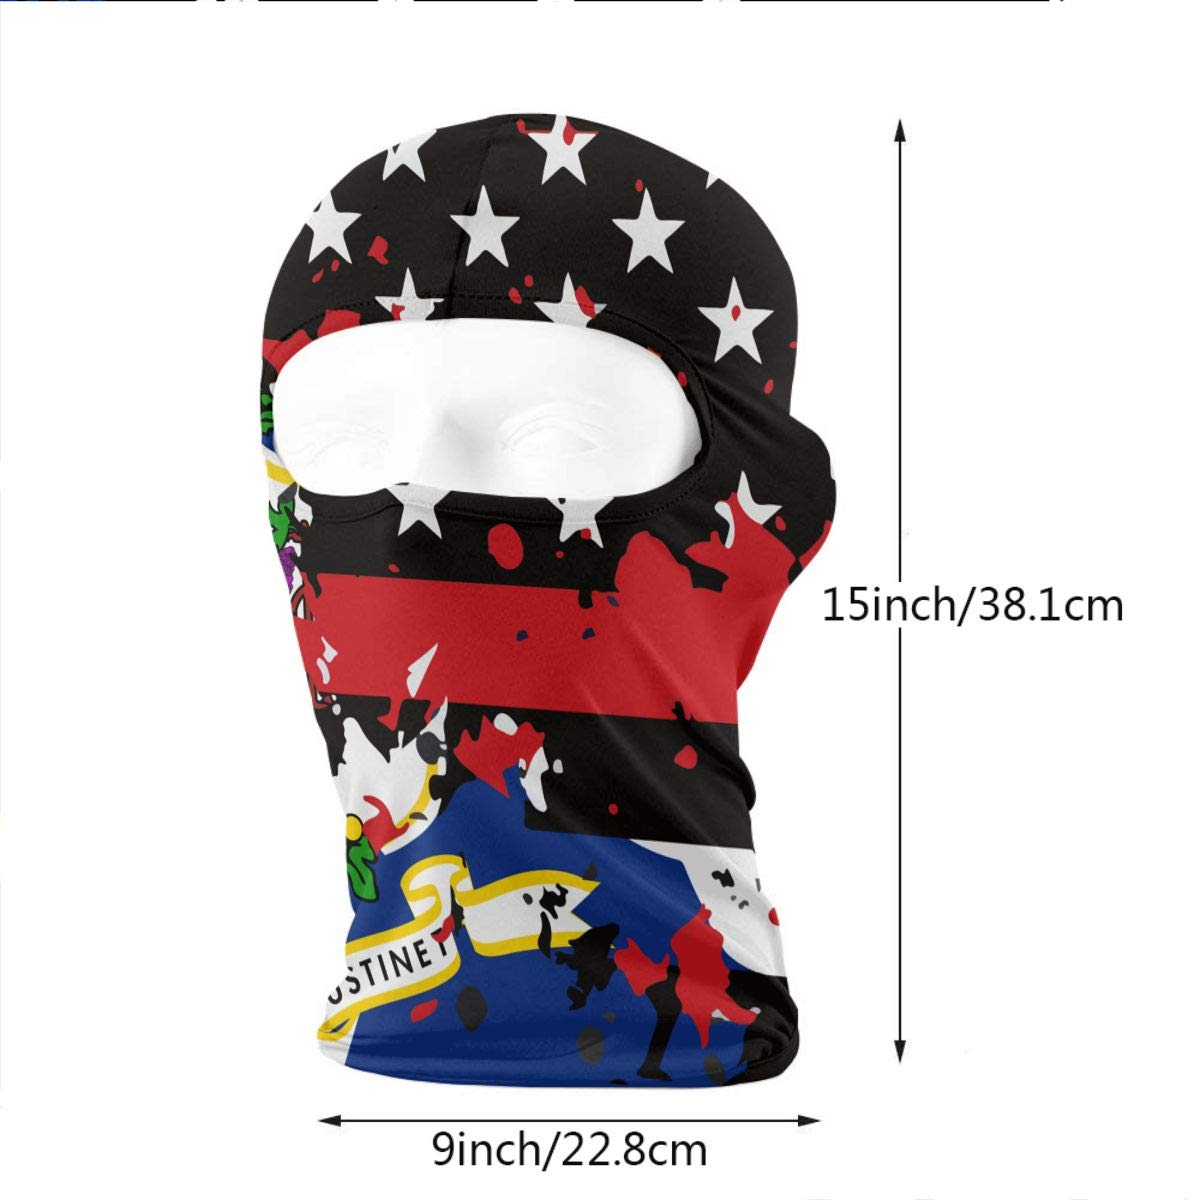 WD rain Connecticut Thin Red Line Flag USA Balaclava Face Mask Headwear  Helmet Liner Gear Full Face Mask Hood Motorcycle Mask at Amazon Men s  Clothing store ... 8c1ca569f